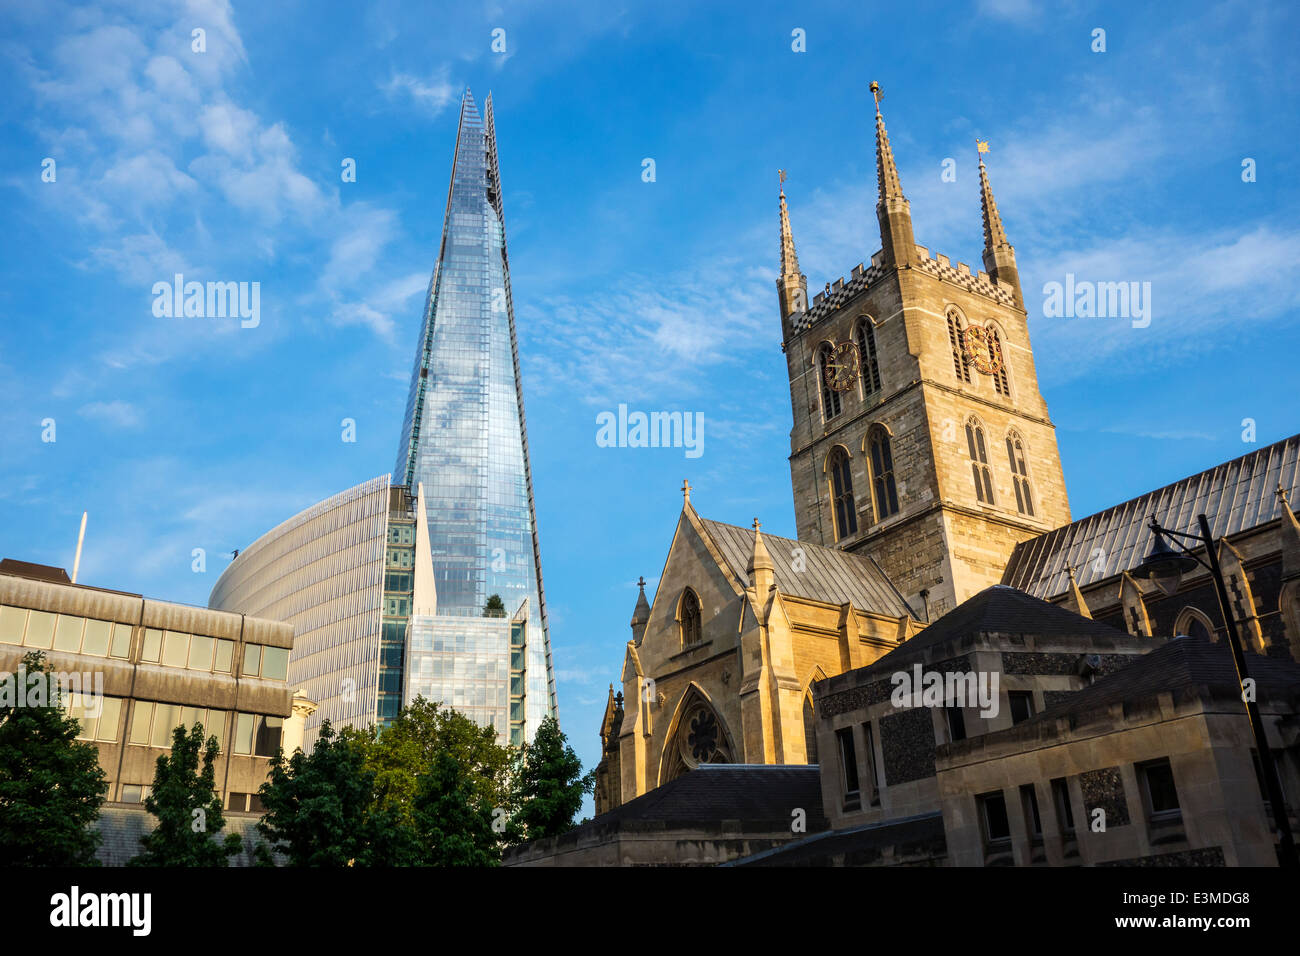 The Shard Southwark Cathedral Old and New London.  The Shard blending with the sky which was a design feature. - Stock Image